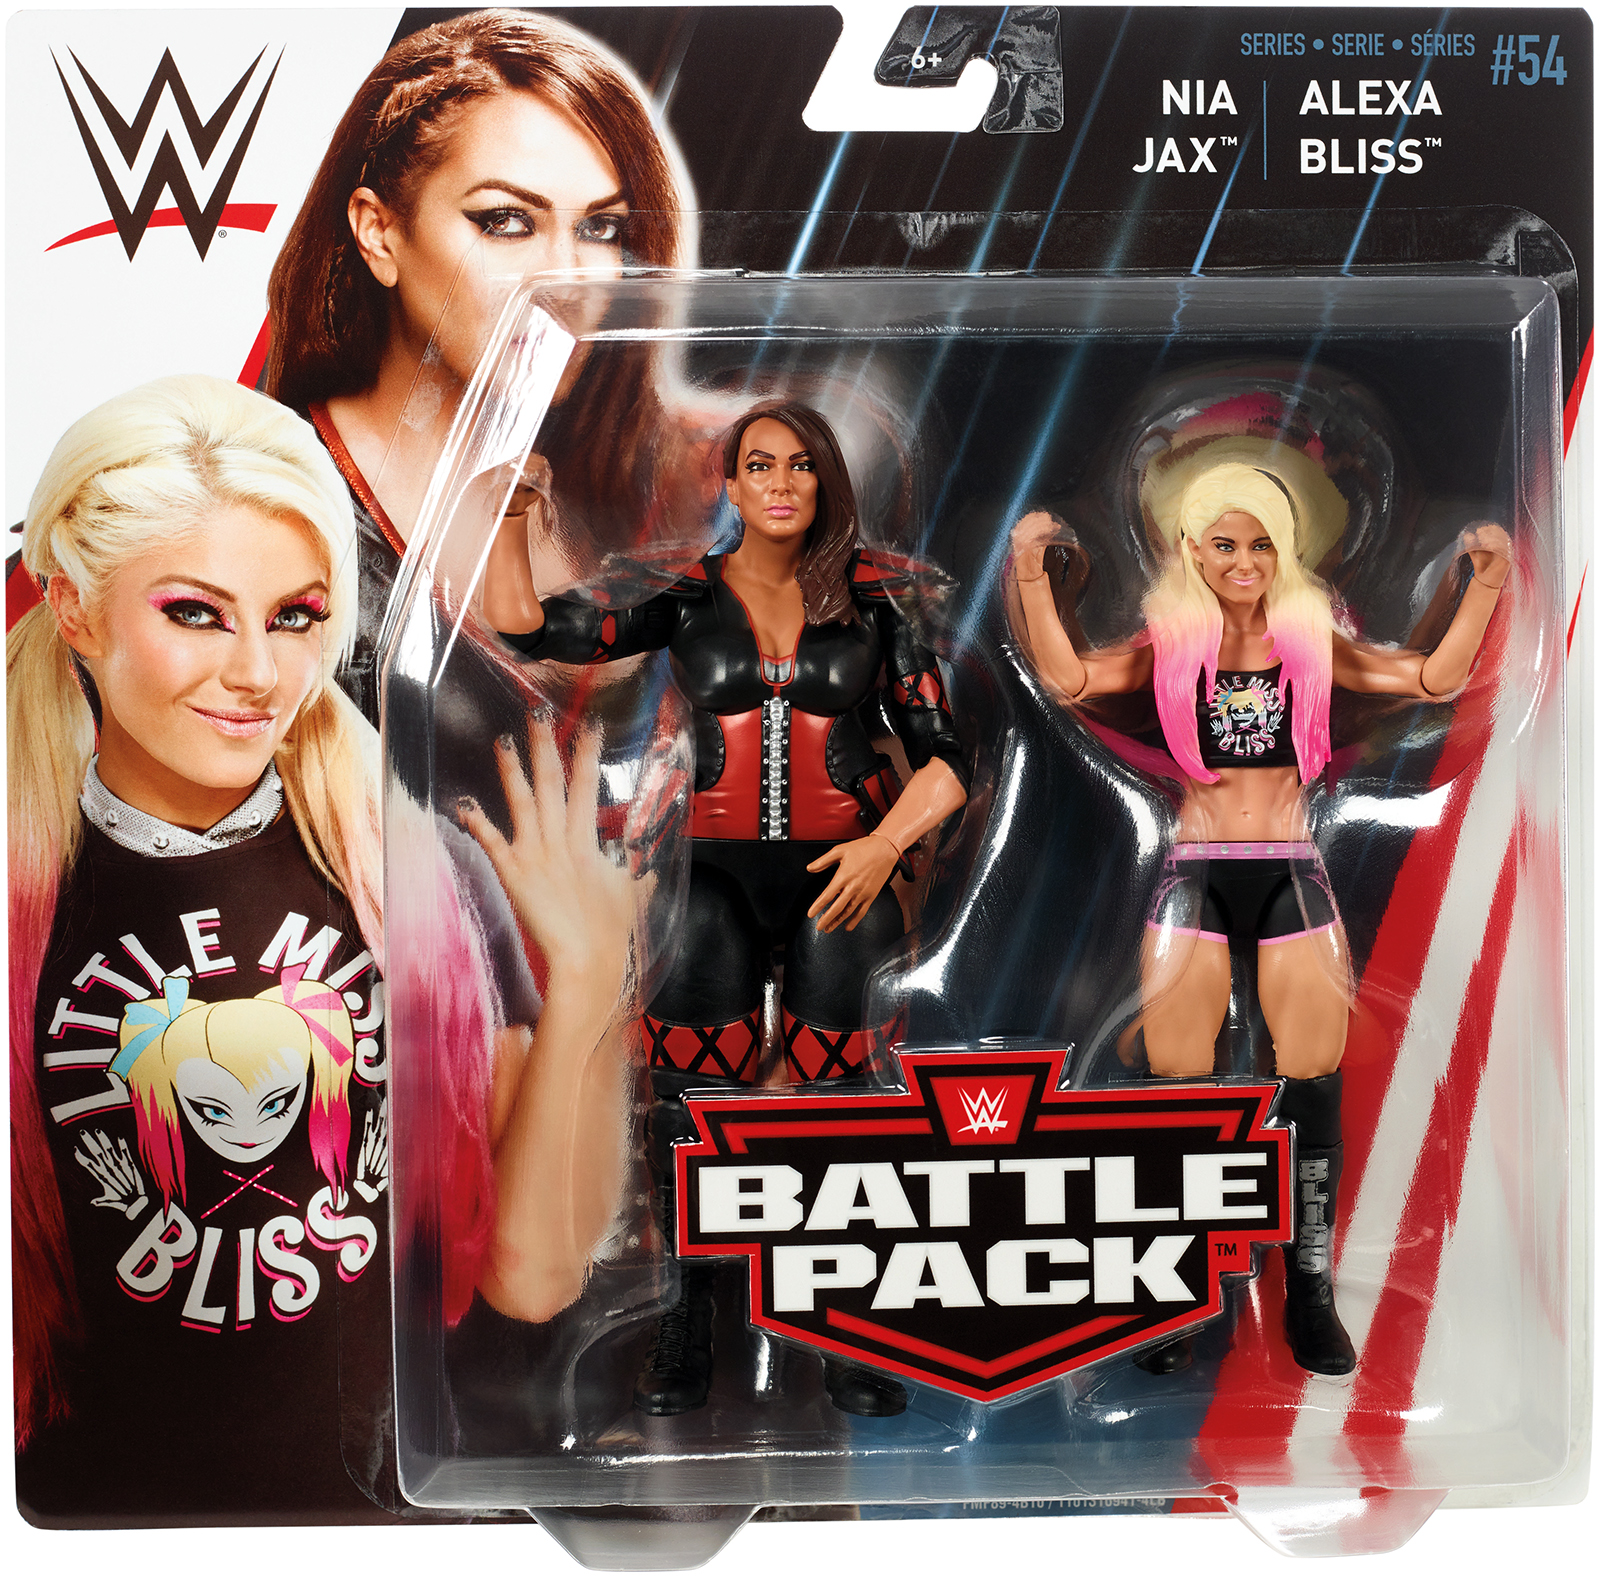 Alexa Bliss Nia Jax Wwe Battle Packs 54 Toy Wrestling Action